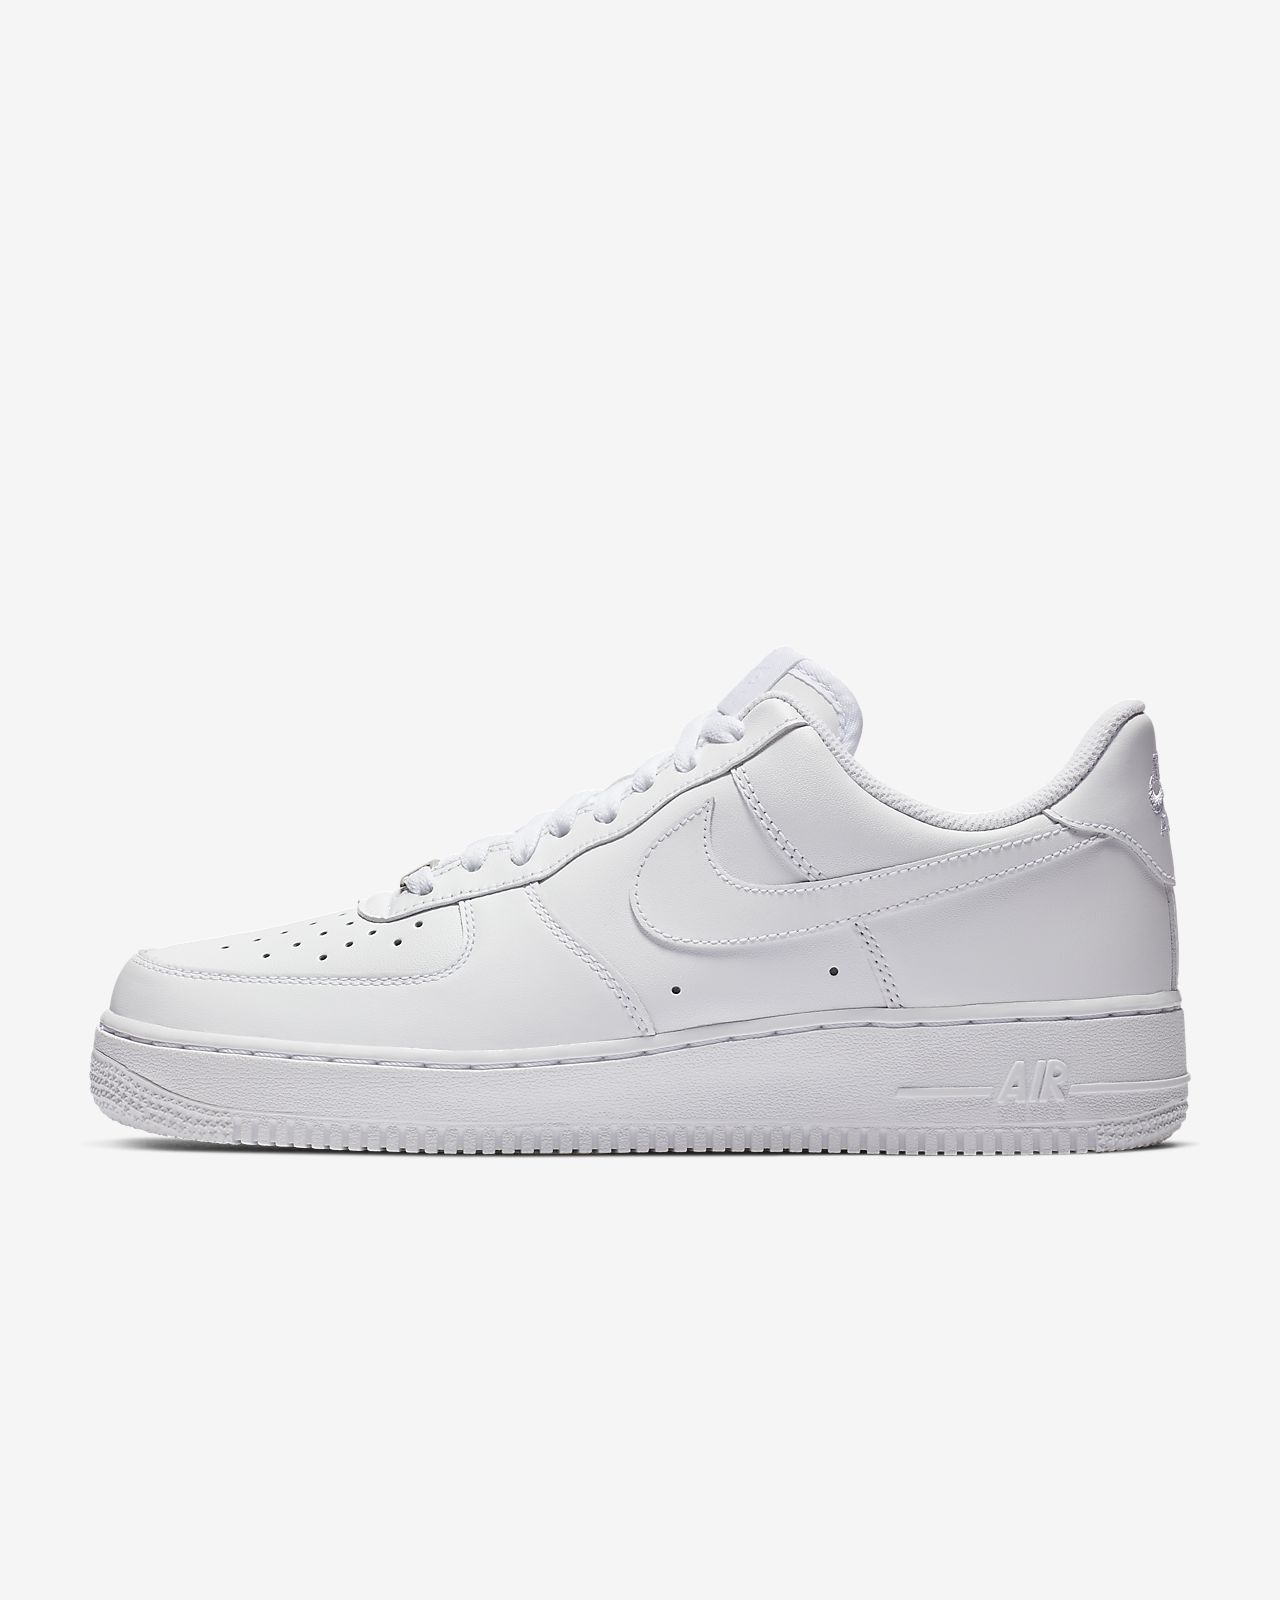 official photos ea1fb 82d77 ... Calzado para mujer Nike Air Force 1  07